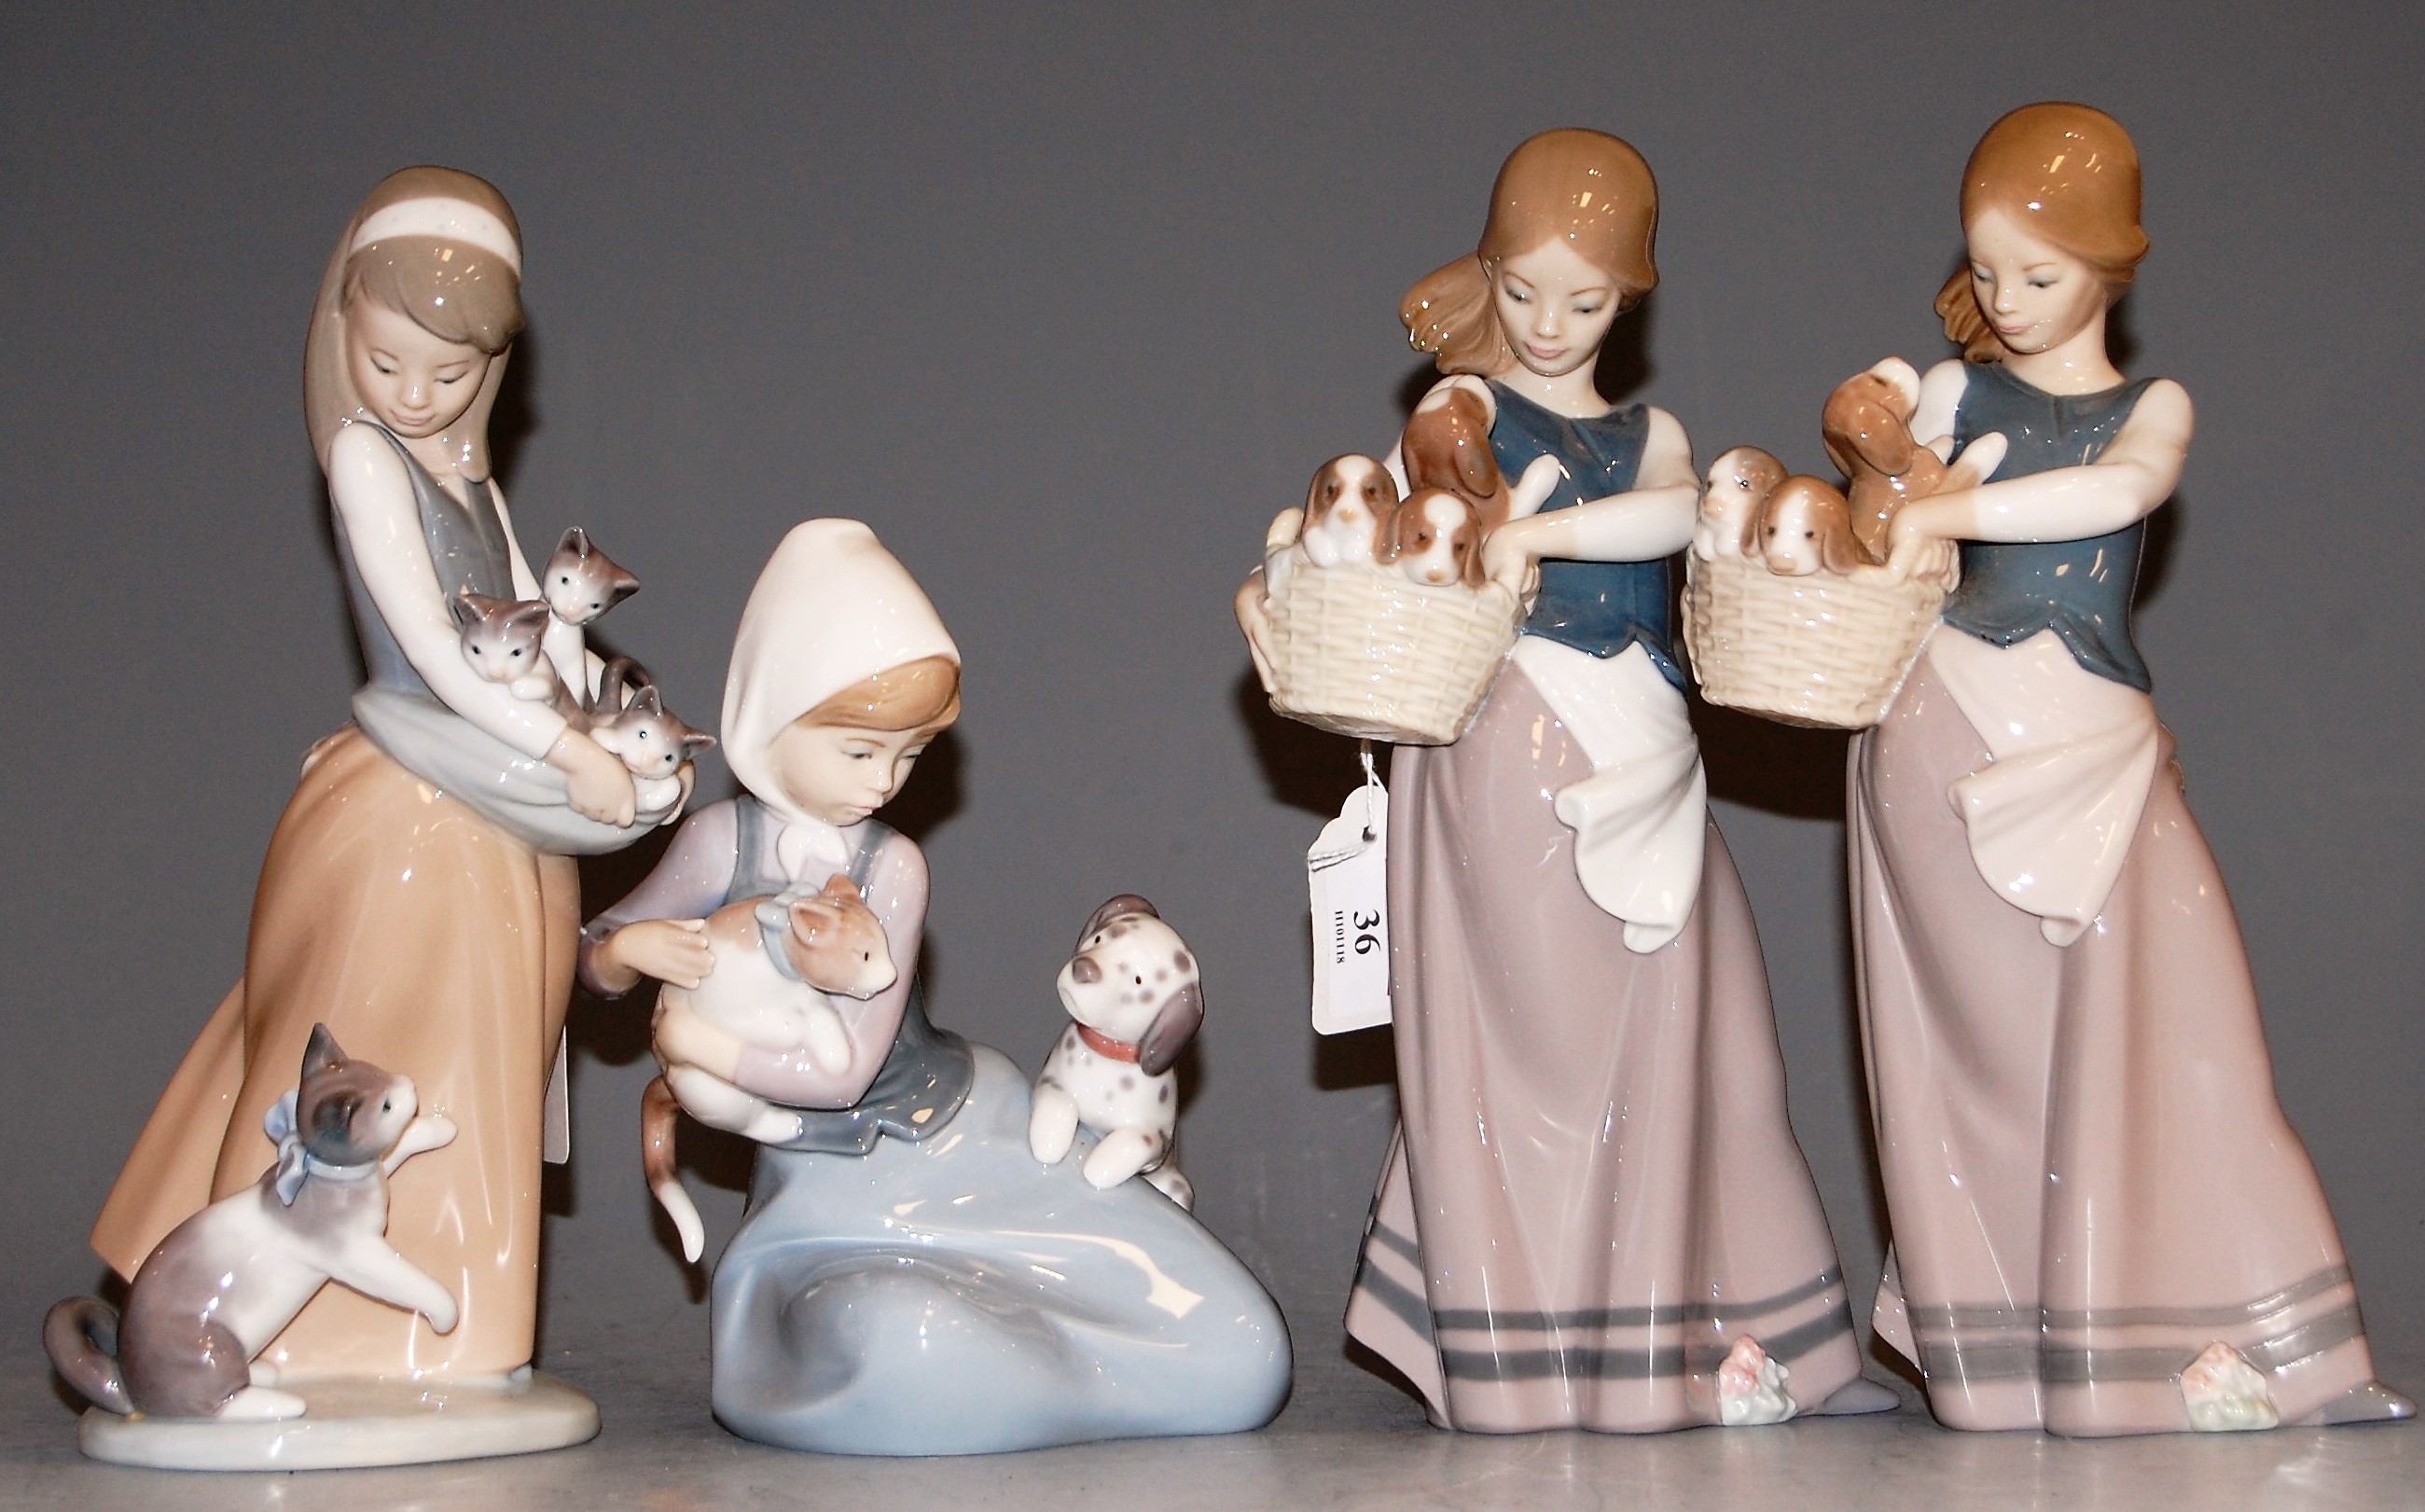 Lot 36 - A Lladro figure of a girl in standing pose with a basket and puppies, 24cm; together with three